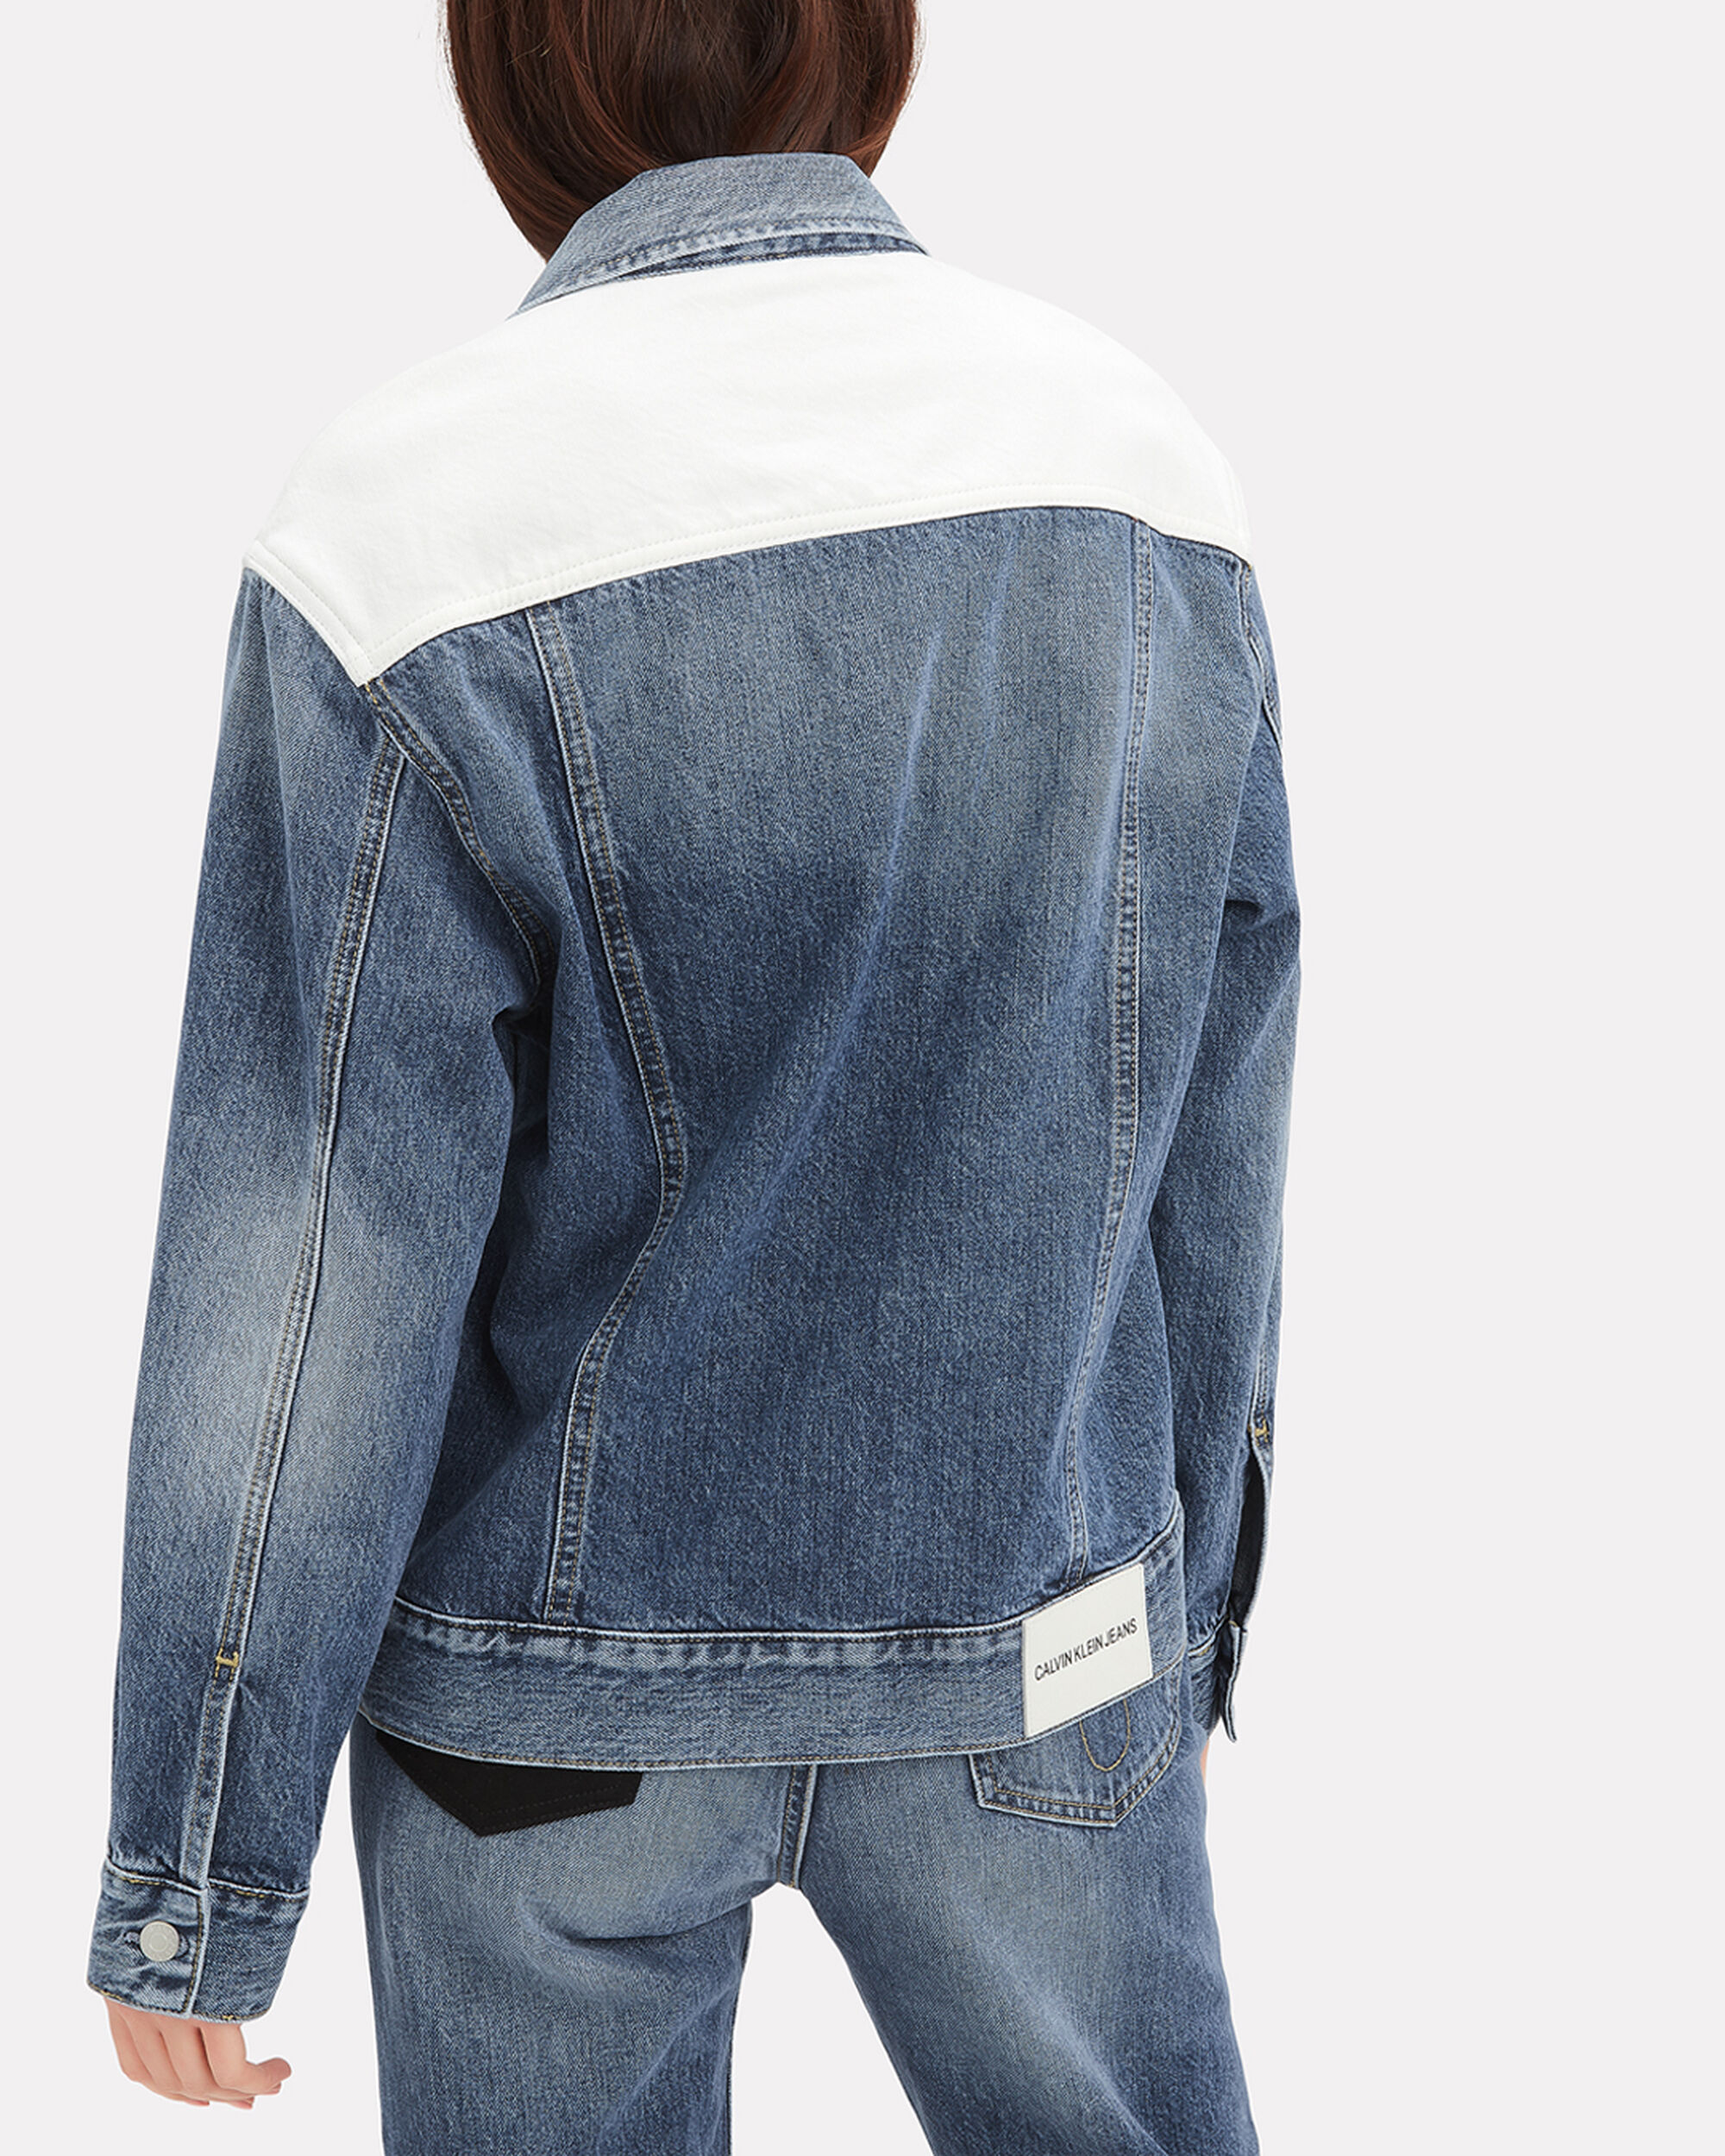 Classic Trucker Denim Jacket, DENIM, hi-res